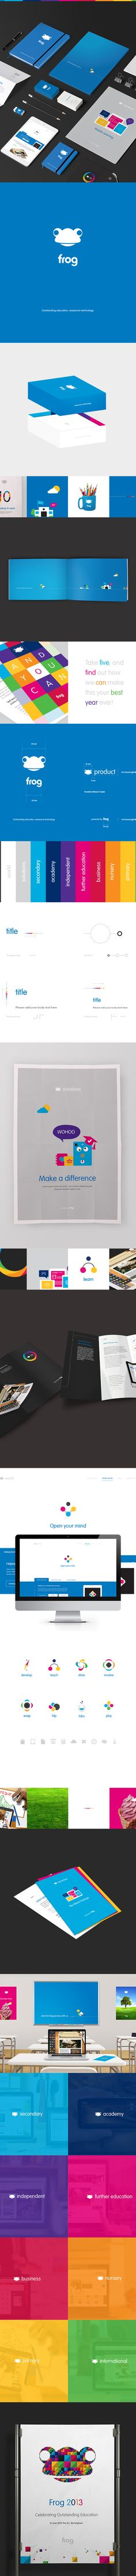 Frogtrade by Samuel James Oxley, via Behance | #stationary #corporate #design #corporatedesign #identity #branding #marketing < repinned by www.BlickeDeeler.de | Take a look at www.LogoGestaltung-Hamburg.de